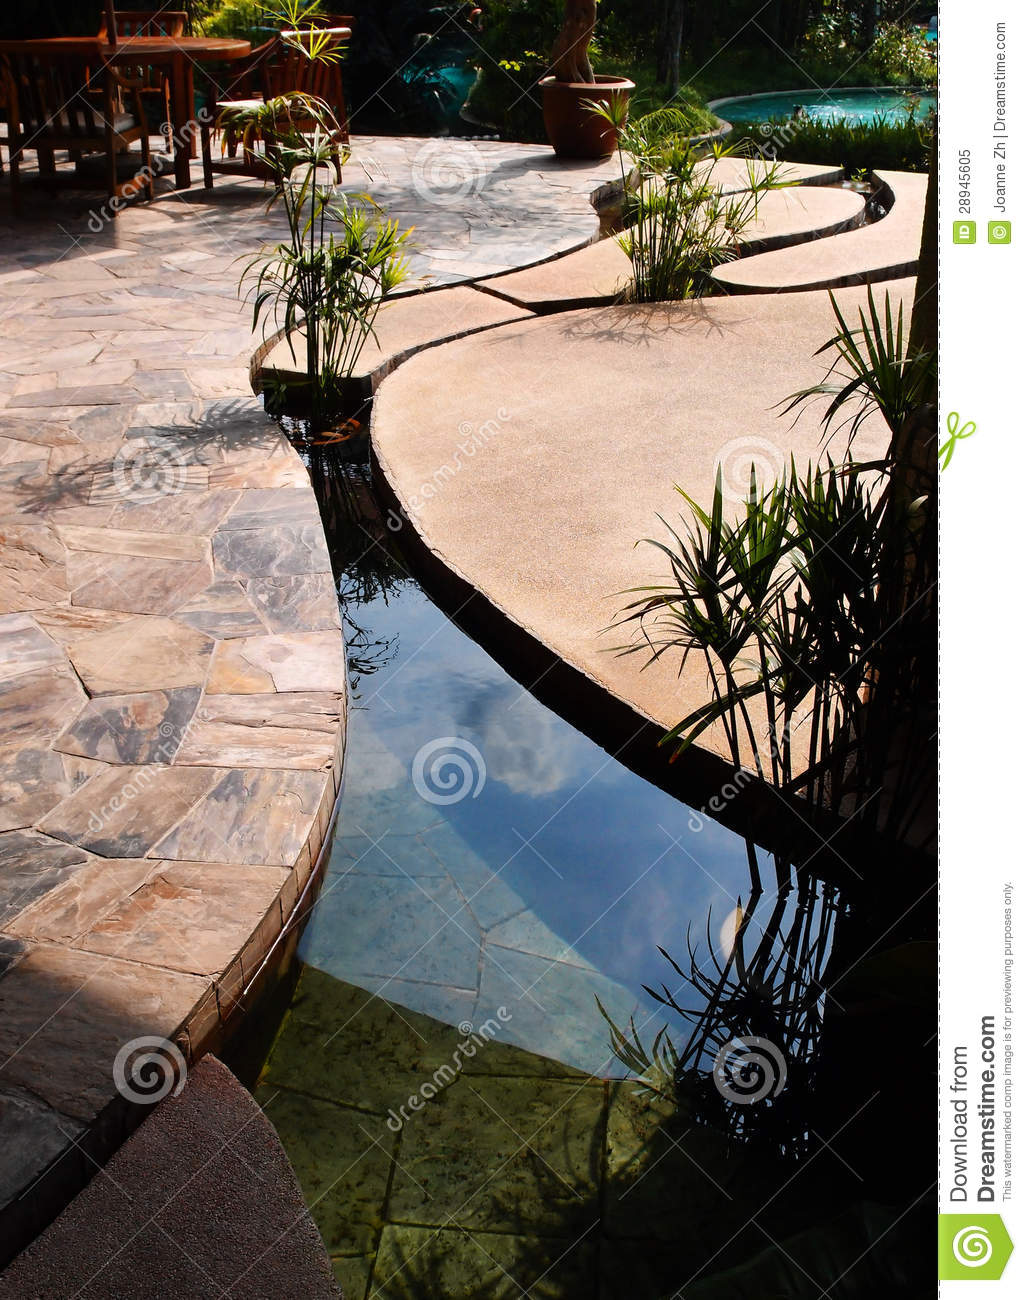 Landscaping - Tropical Resort Concrete Pond Stock Image ...